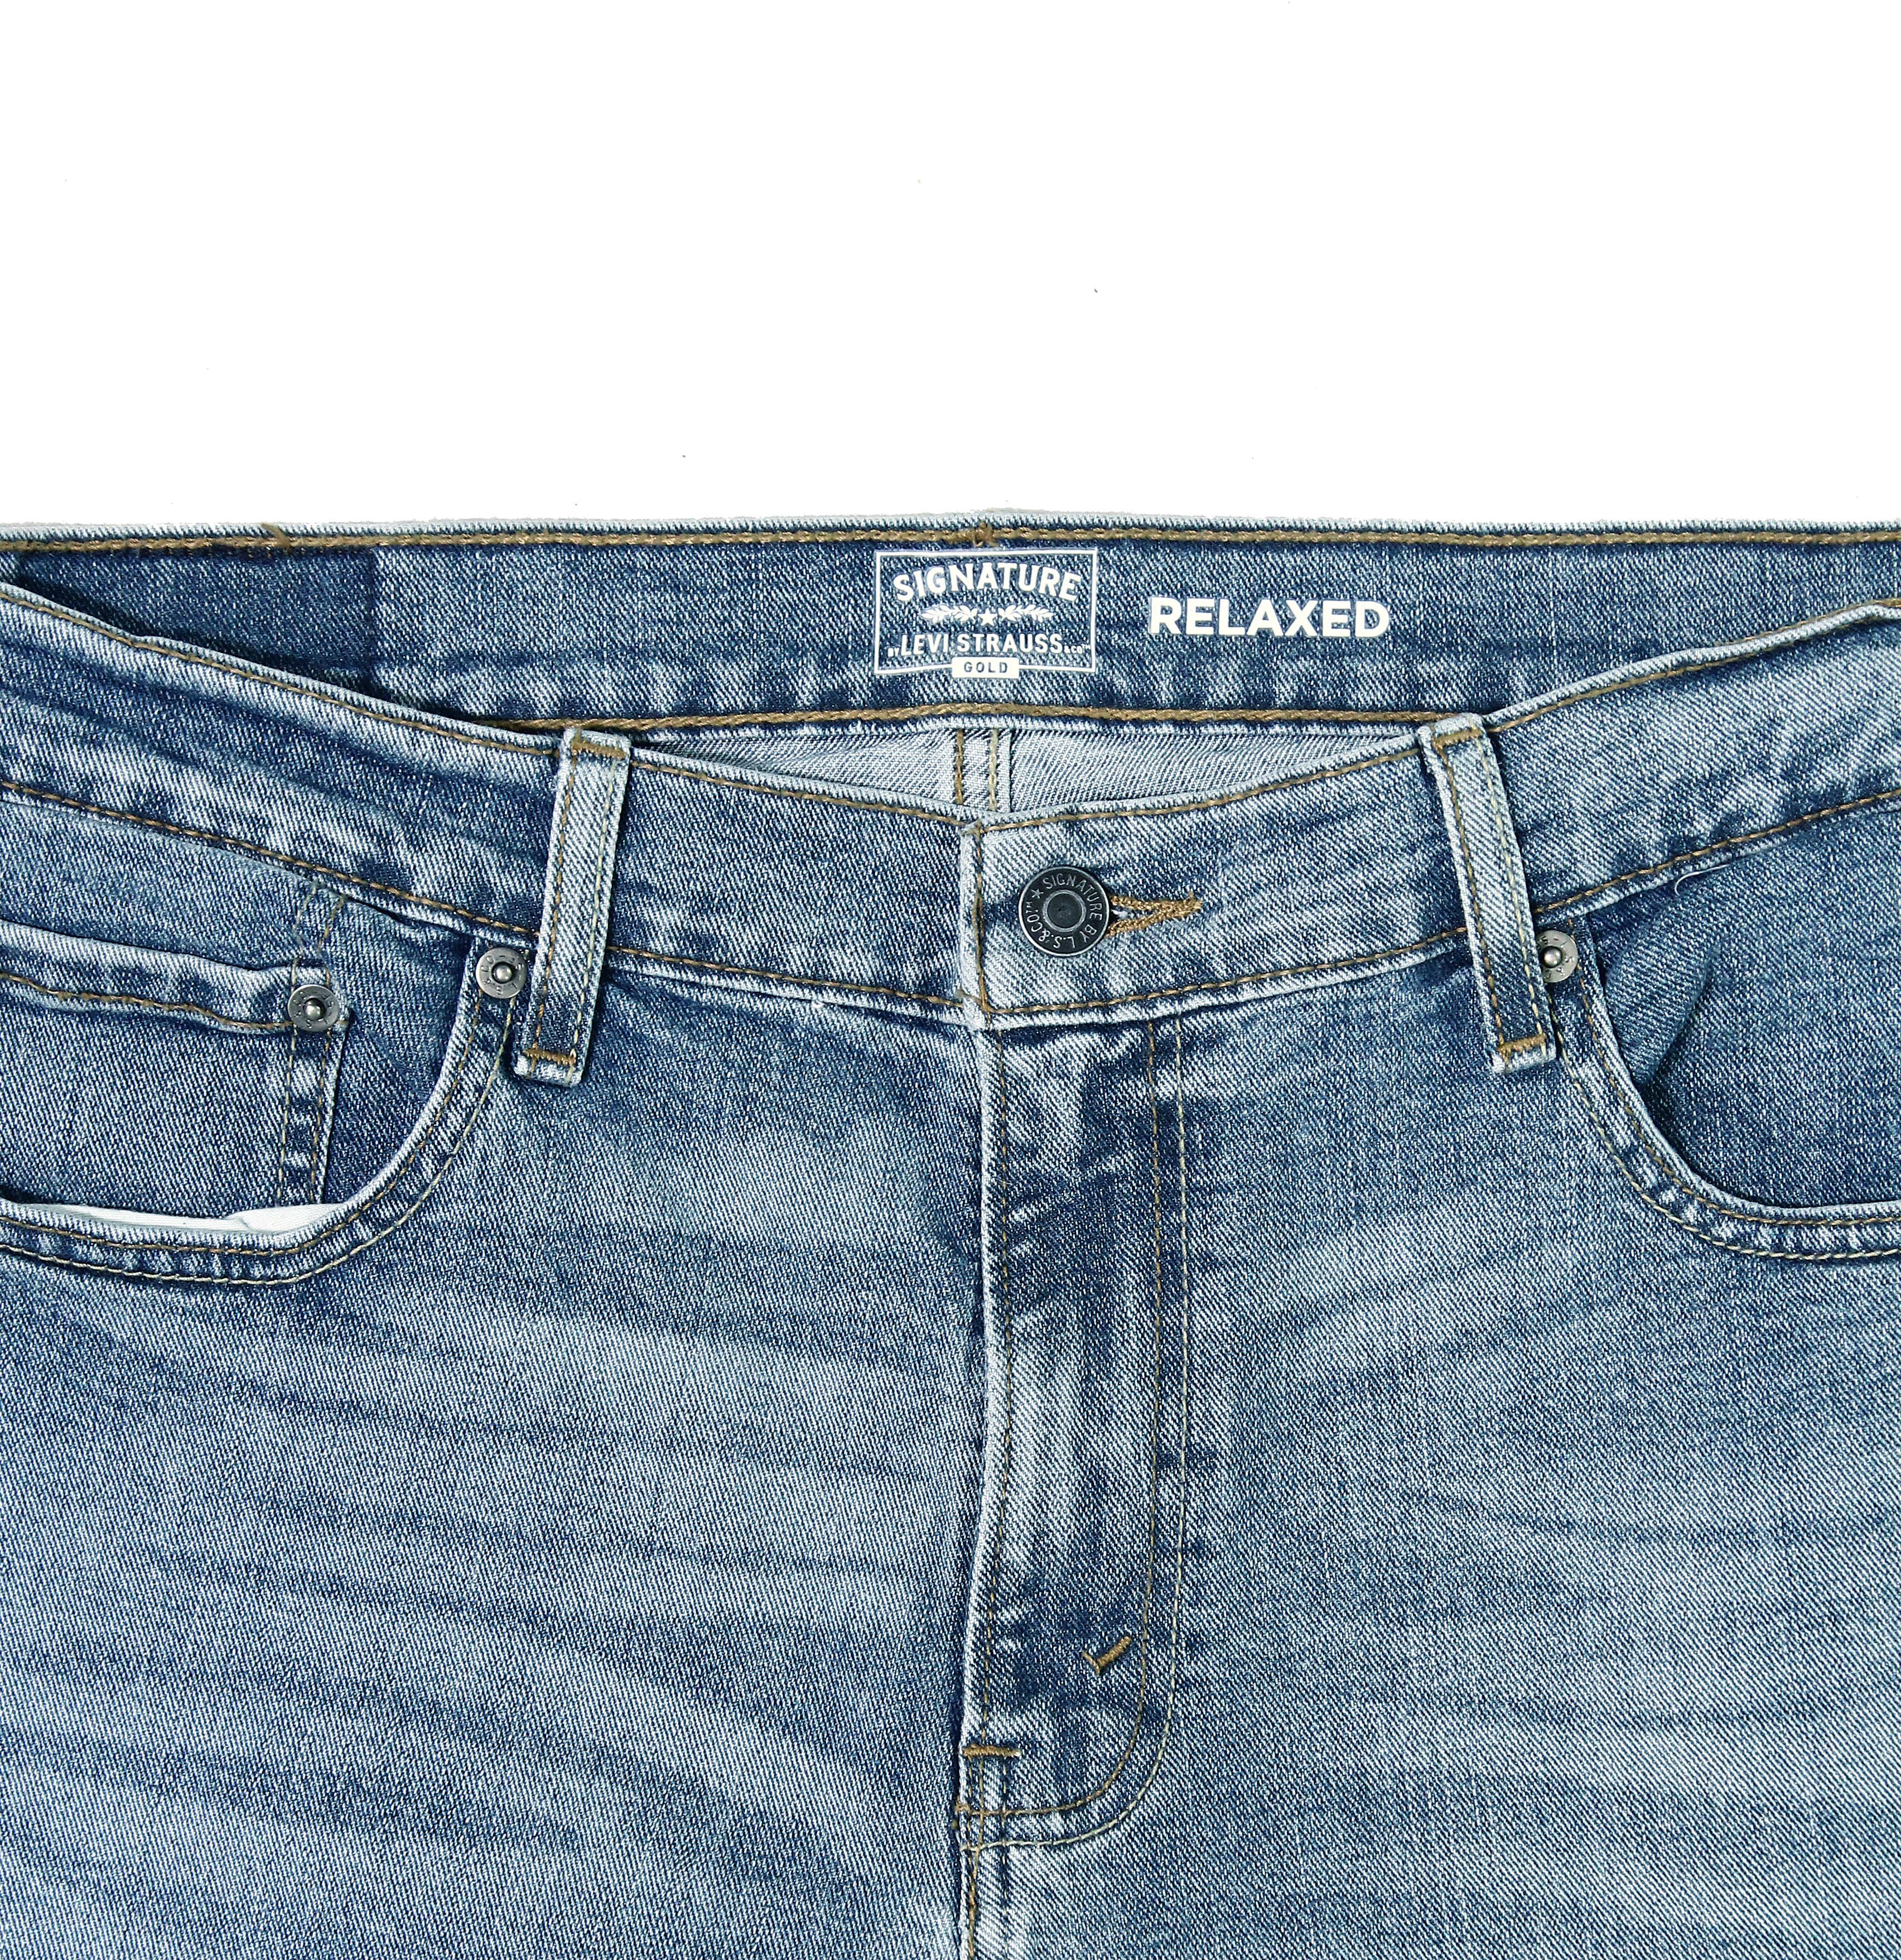 Signature-By-Levi-Strauss-amp-Co-Gold-Label-Titan-Blue-Men-Relaxed-Fit-Jeans thumbnail 5